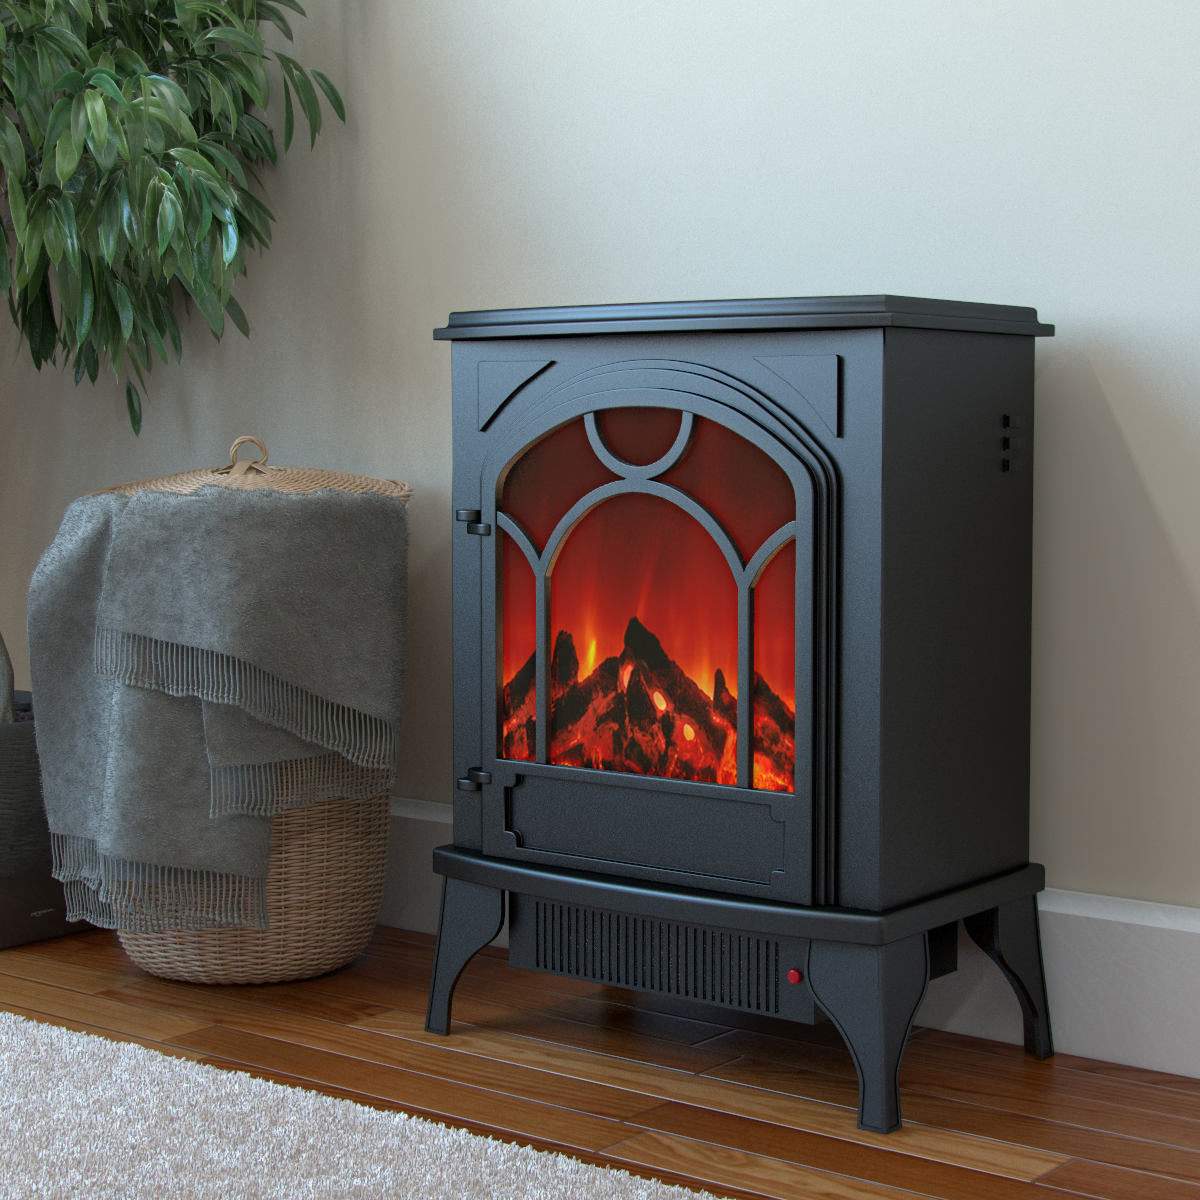 Regal Flame Aries Electric Fireplace Free Standing Portable Space Heater Stove-Regal Flame Aries Electric Fireplace Free Standing Portable Space Heater Stove The Aries electric stove delivers a classic picture frame front and dancing flame in a small